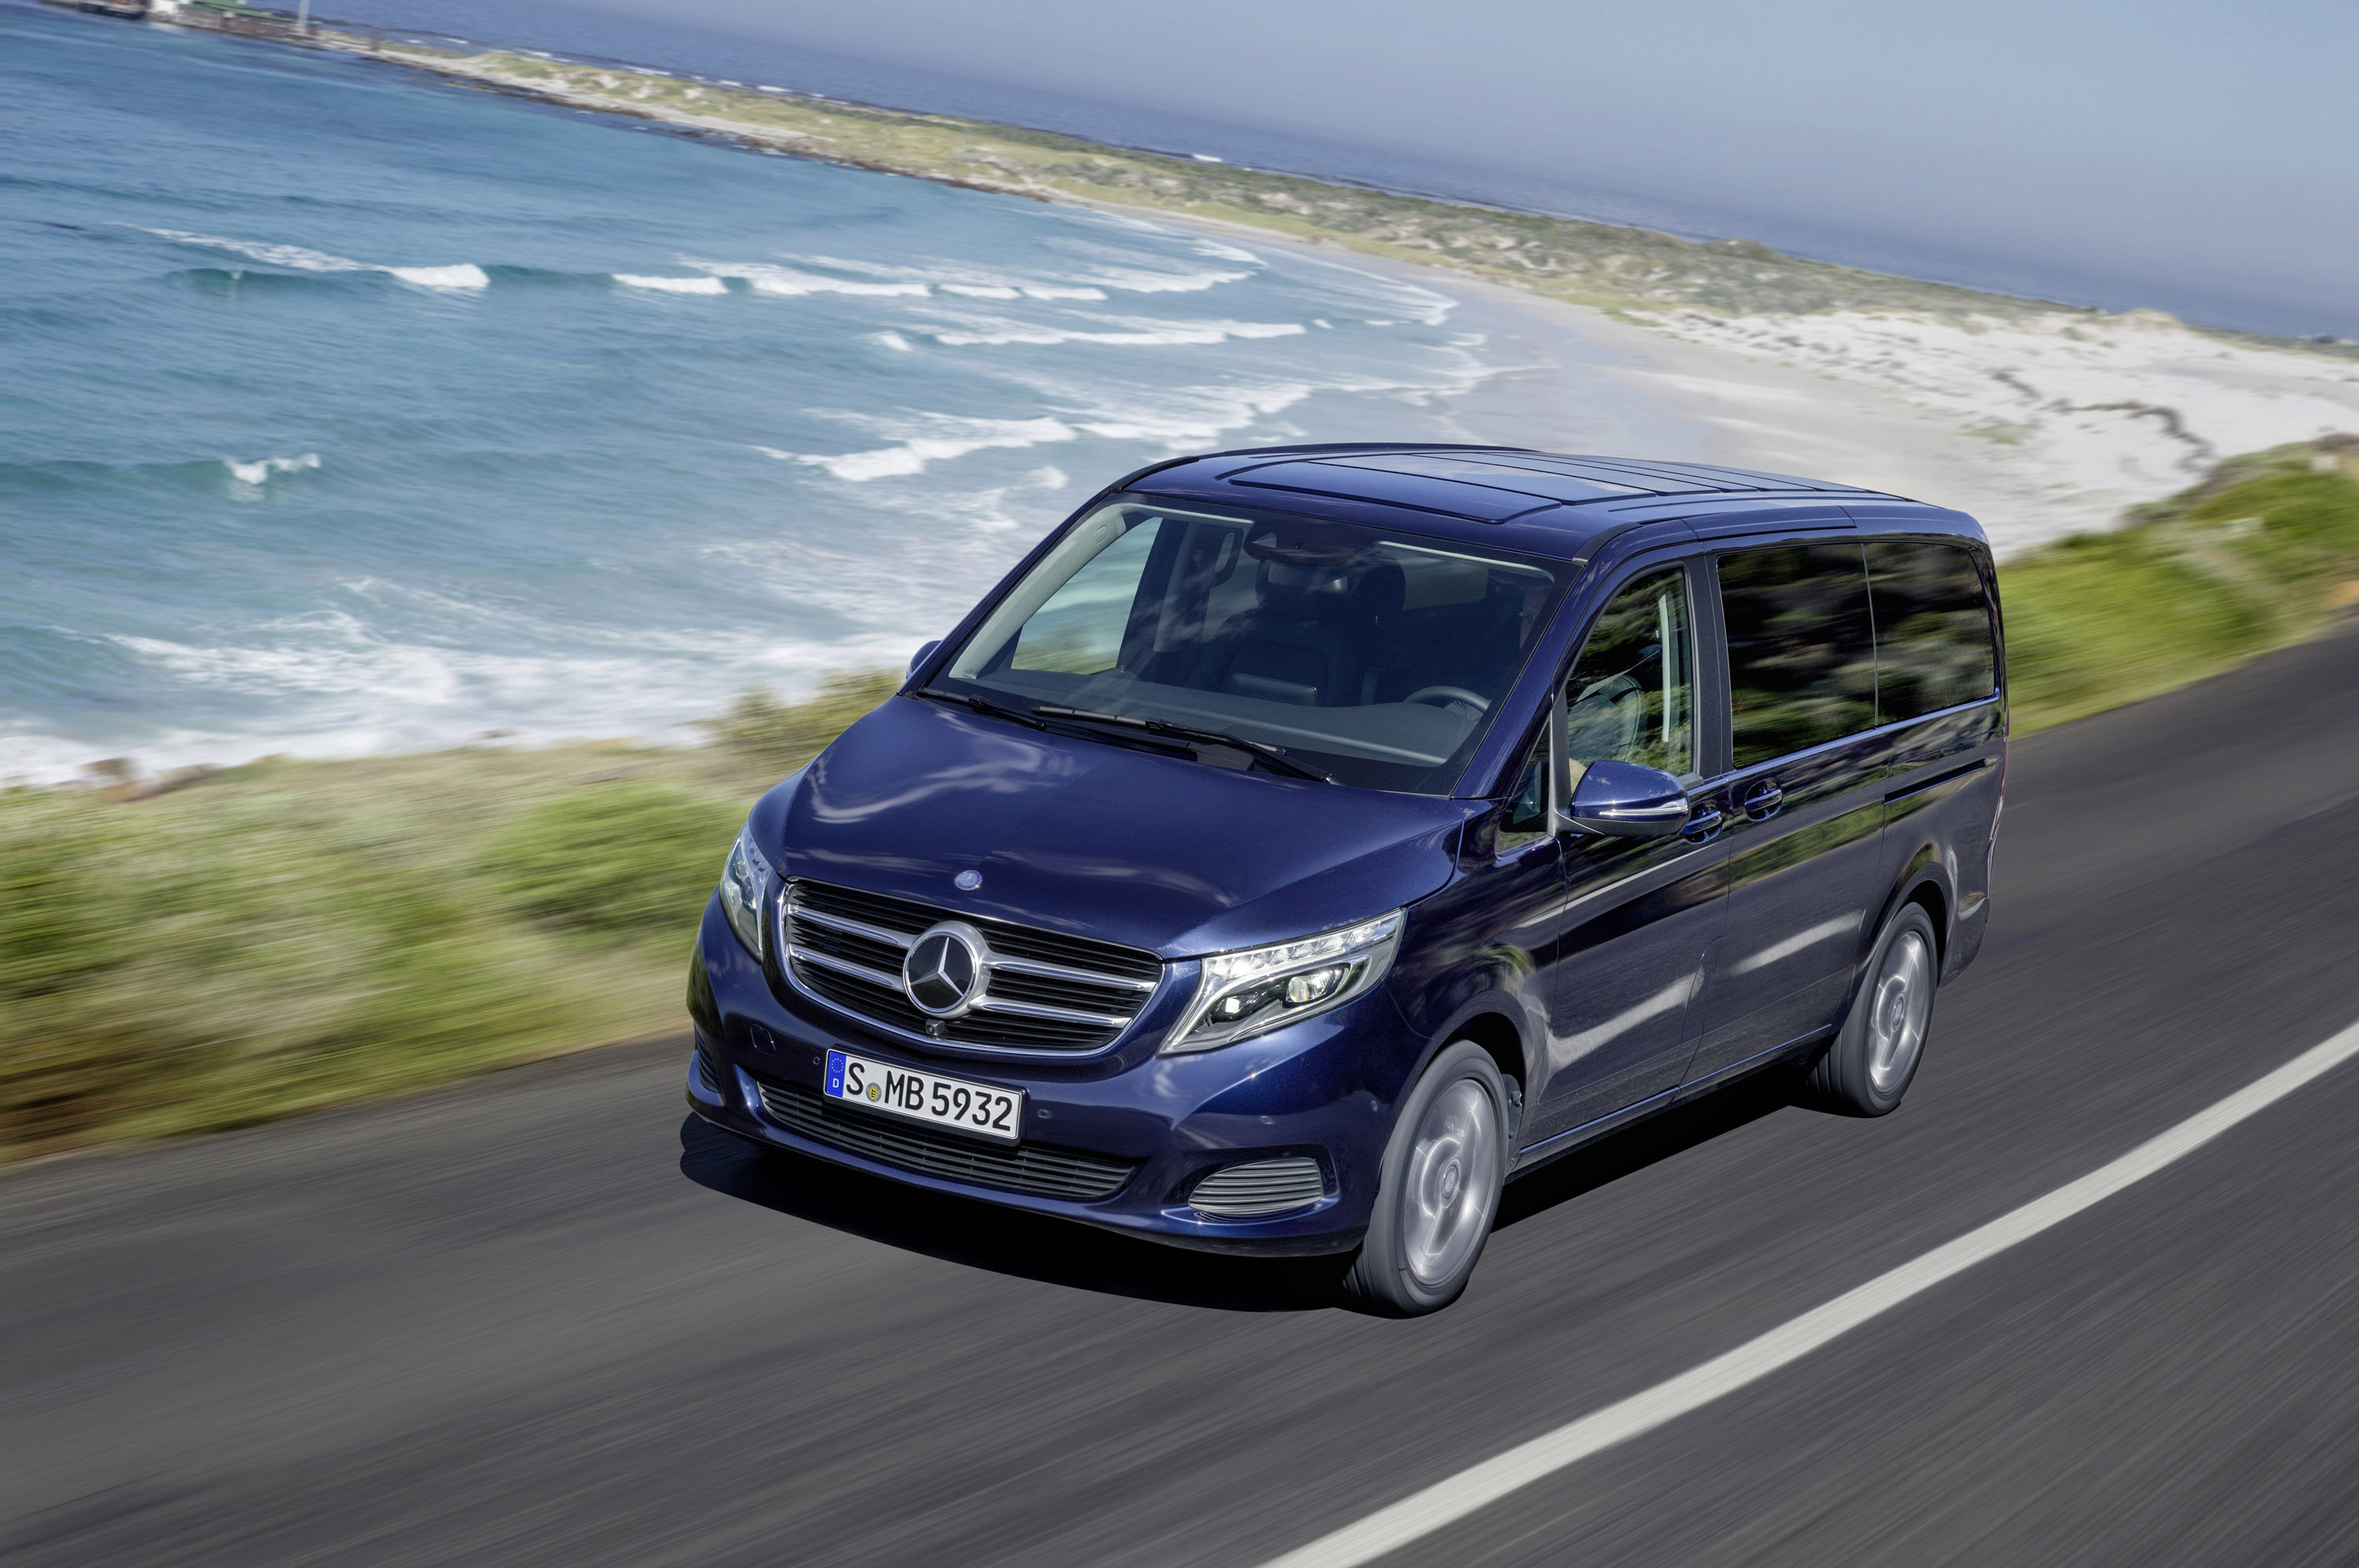 2015 mercedes benz v class the best mpv. Black Bedroom Furniture Sets. Home Design Ideas